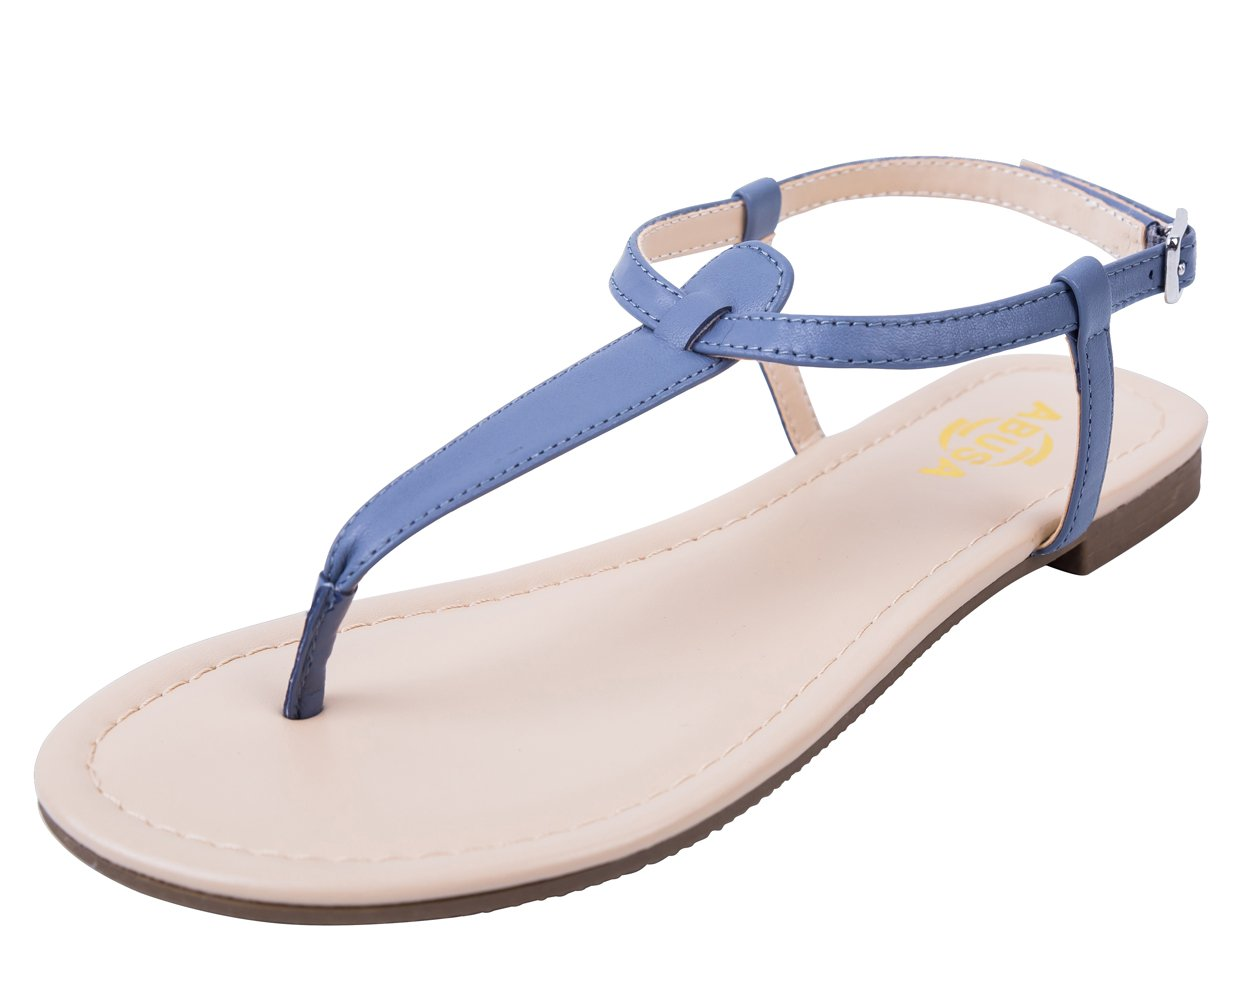 ABUSA Women's Leather/Suede Foldable Sandals Shoes